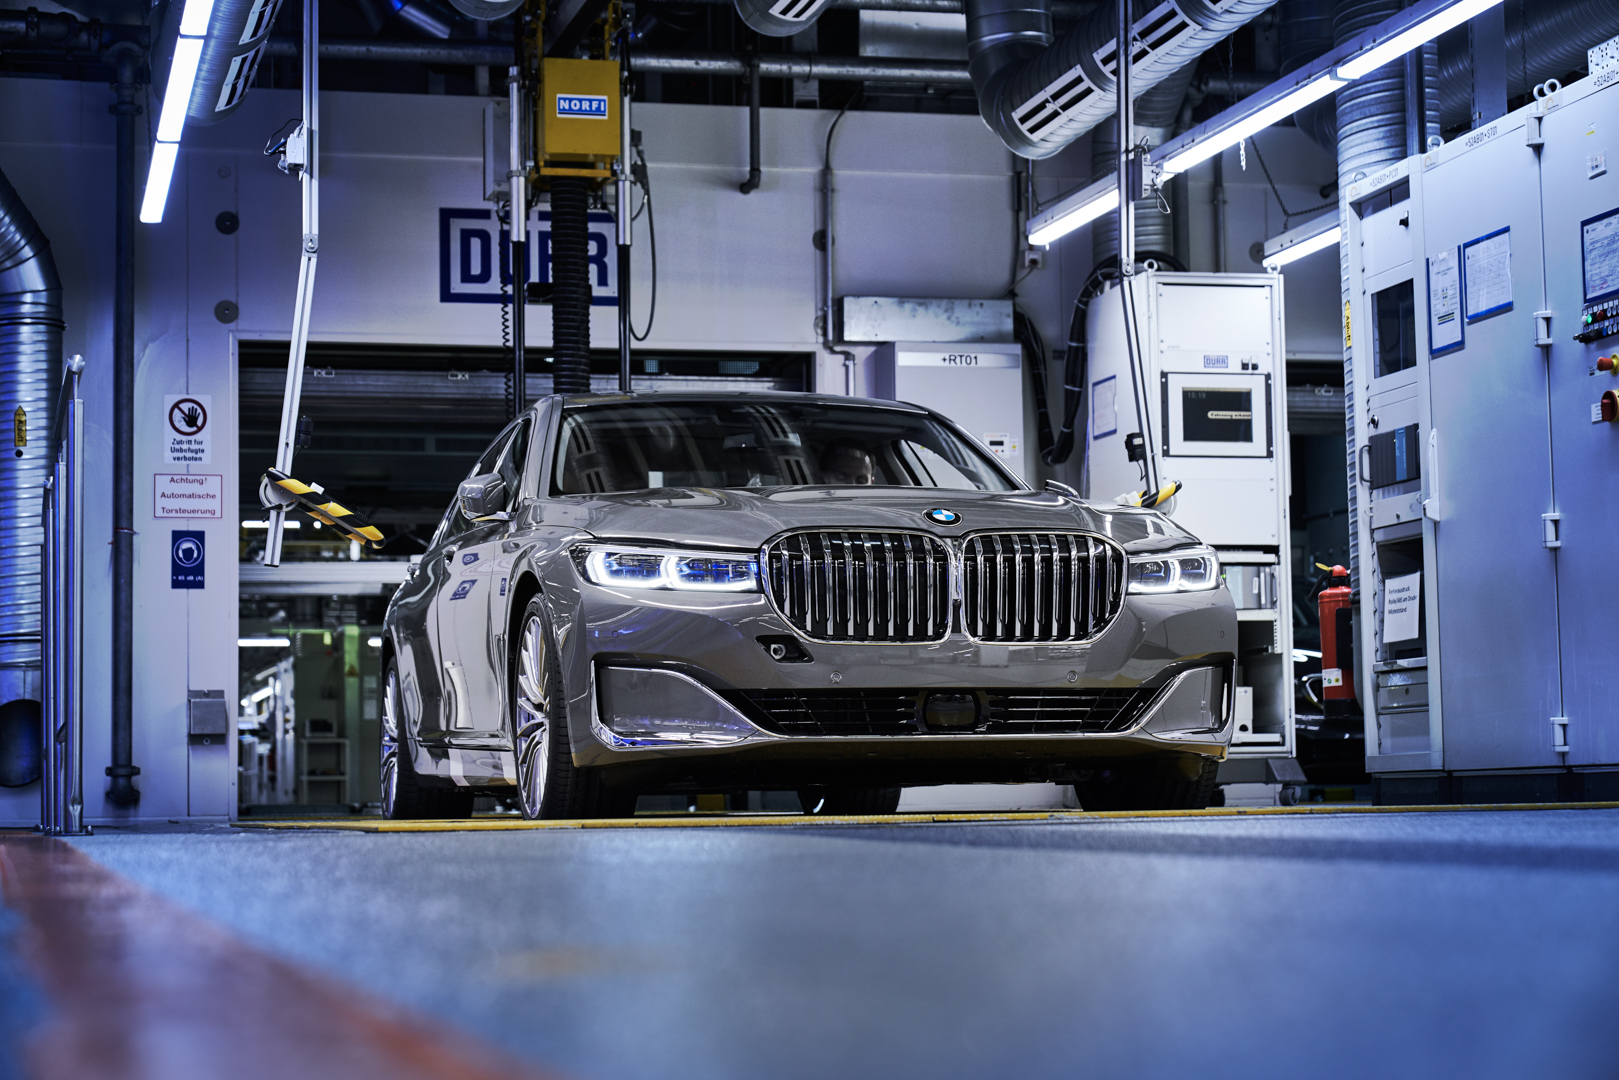 BMW 7 Series LCI Dingolfing 11 of 13